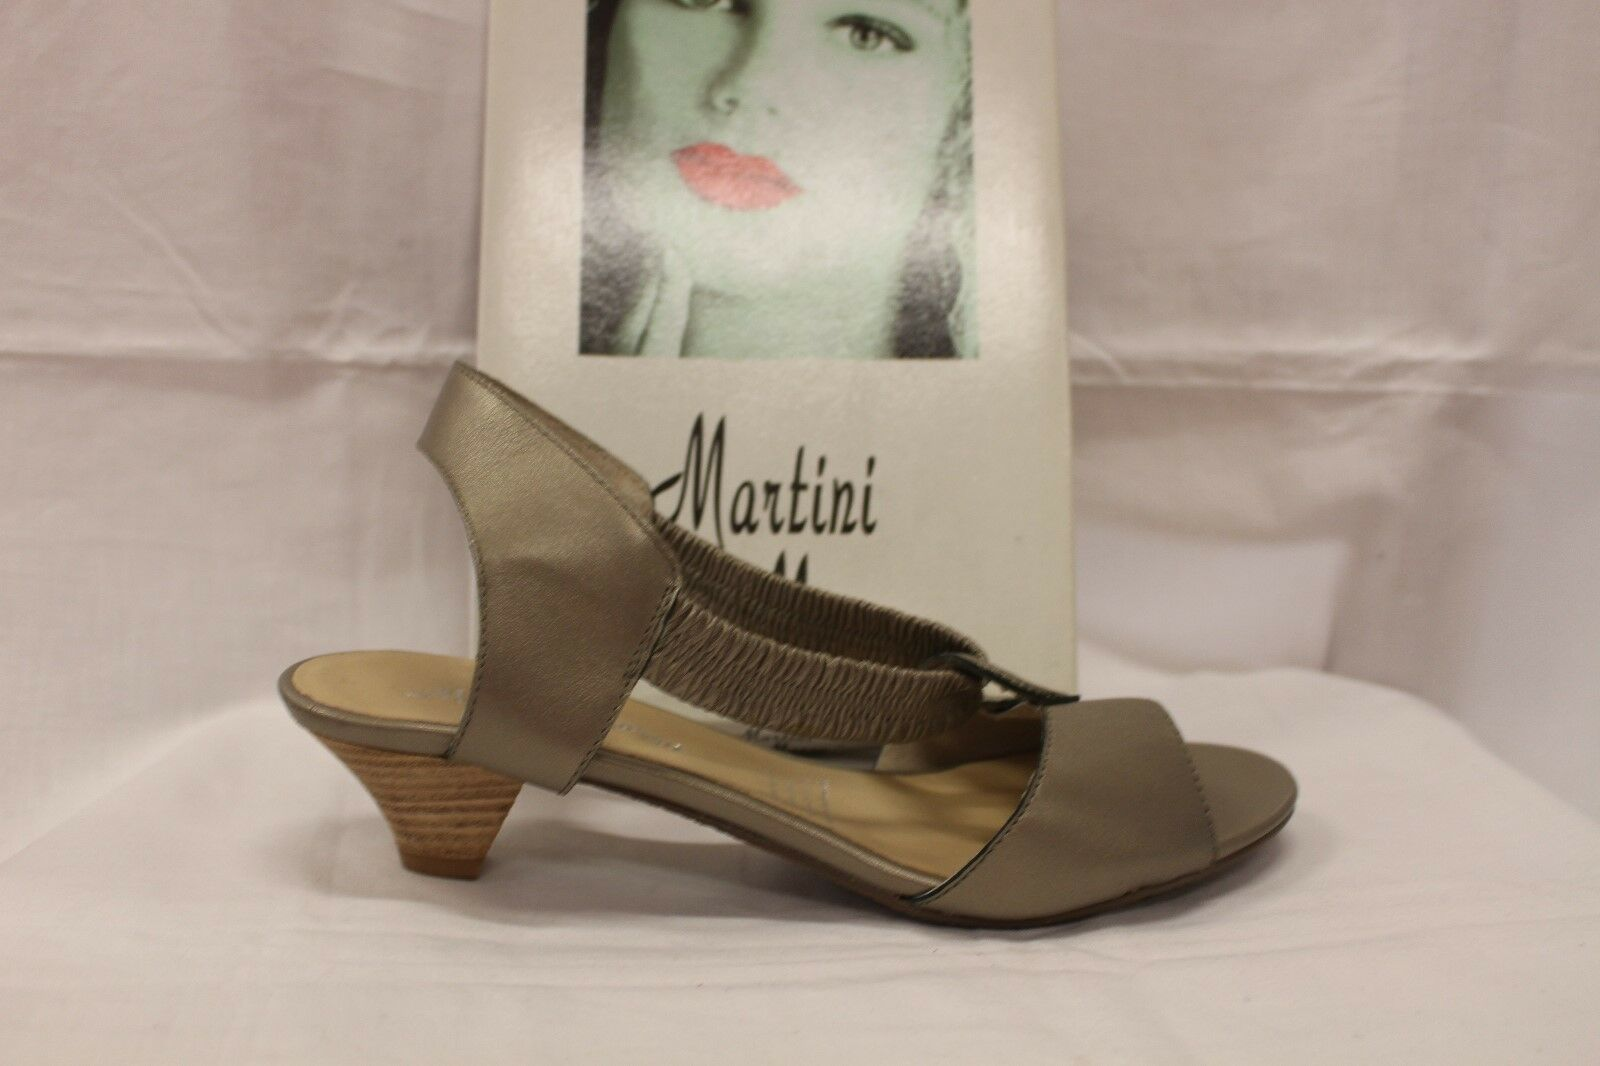 LADIES SHOES/FOOTWEAR - Martini Marco Andre pewter size 38/7